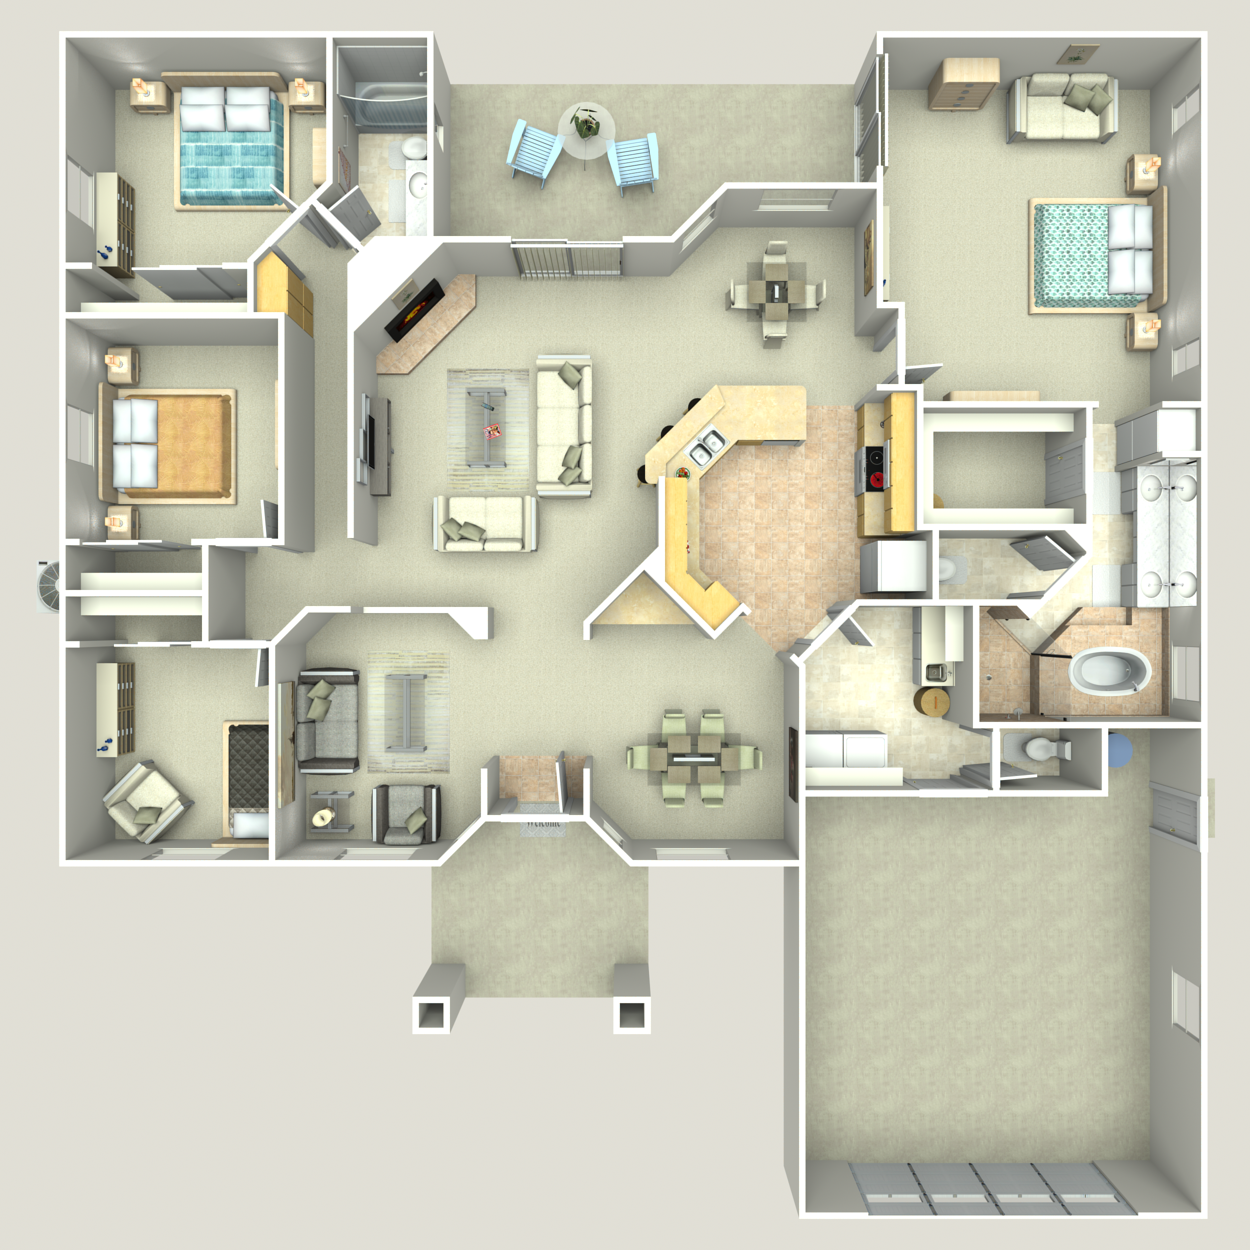 Floor plan image of Executive